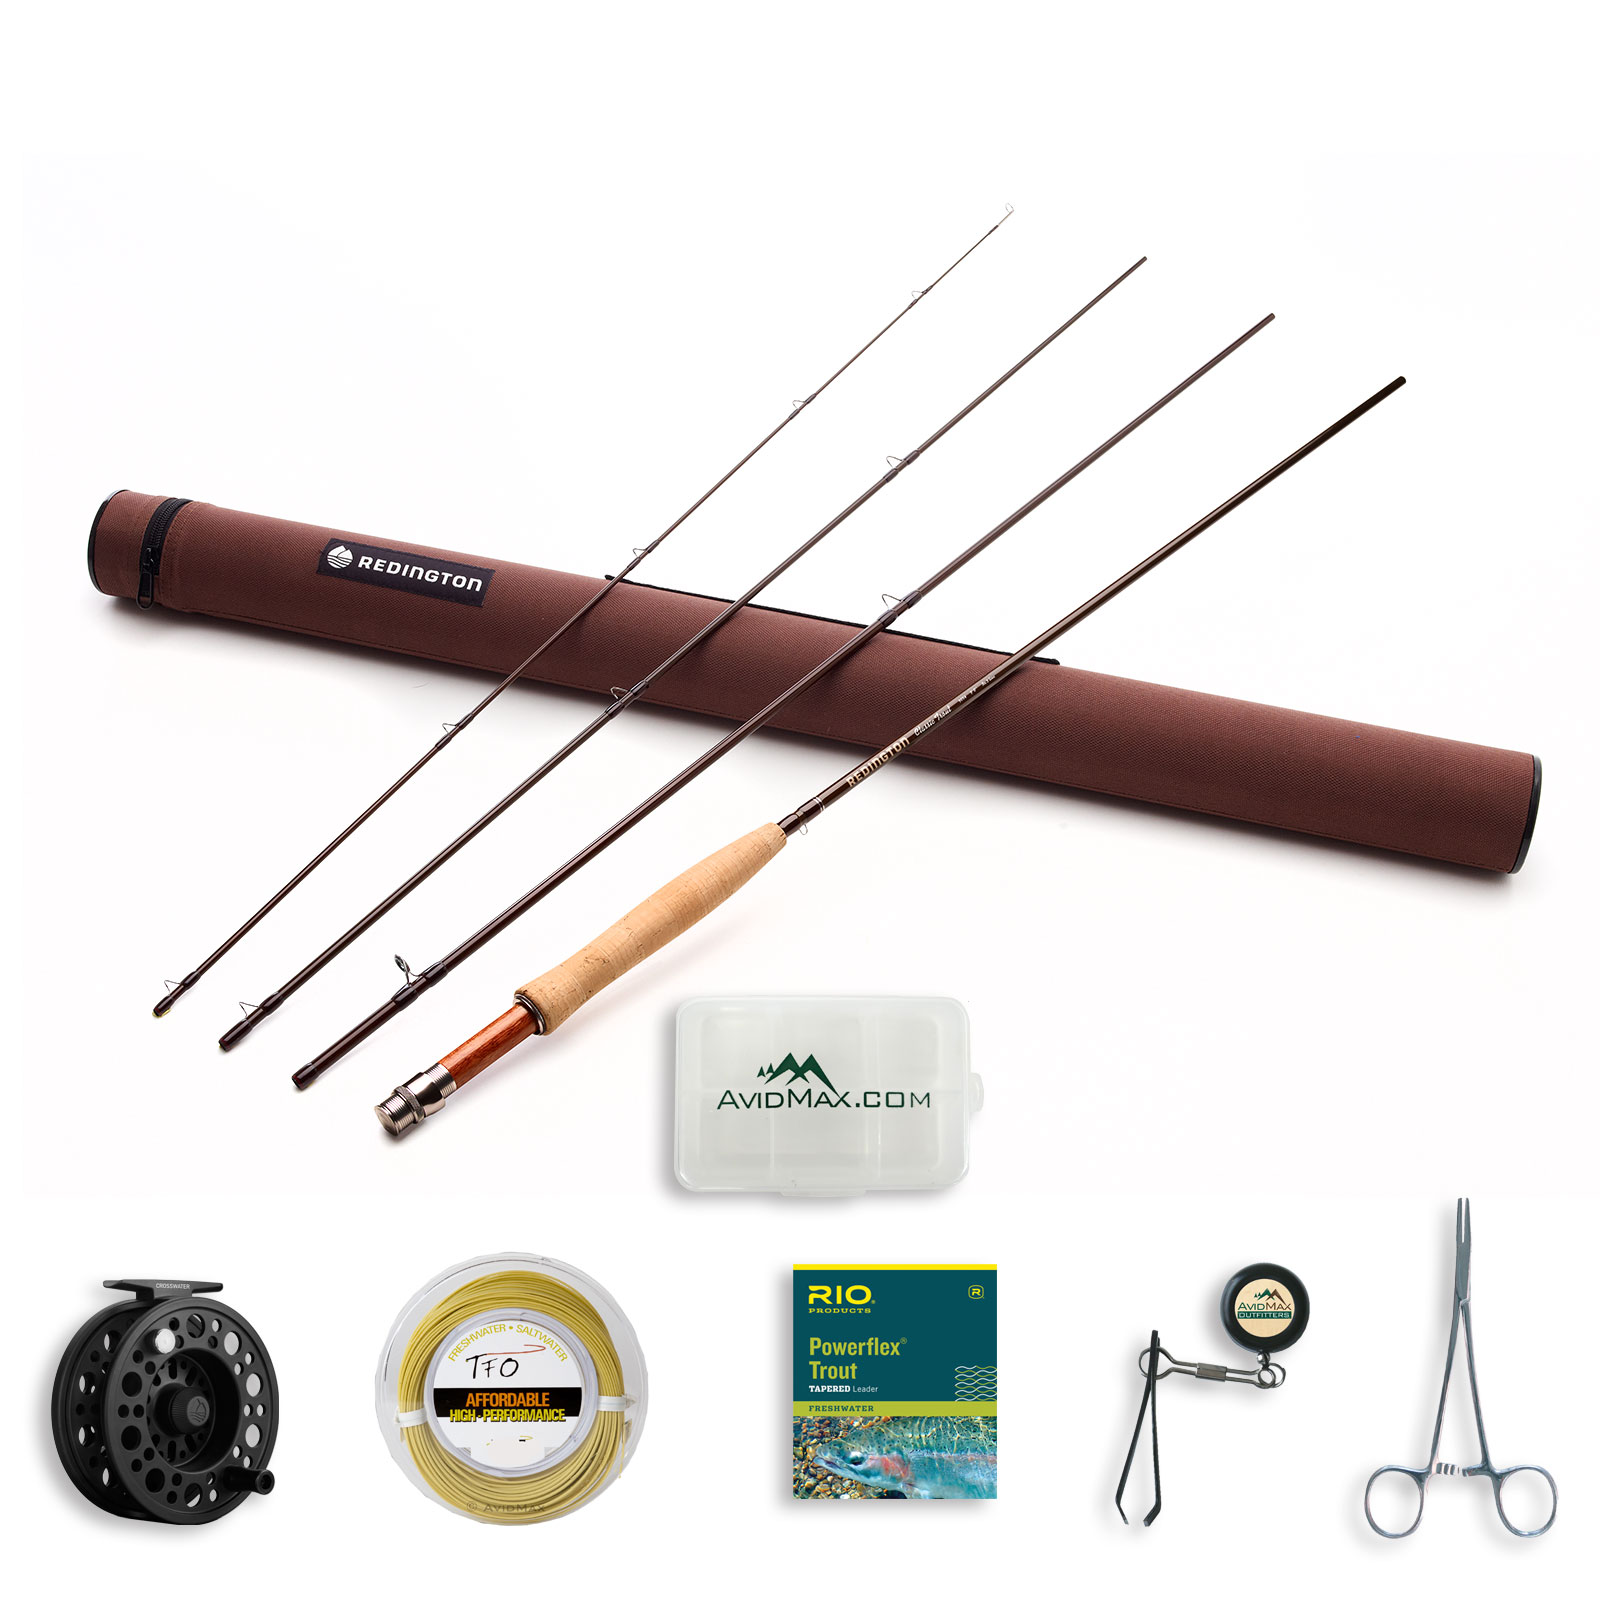 Redington Classic Trout Fly Rod and Crosswater Reel Outfi...